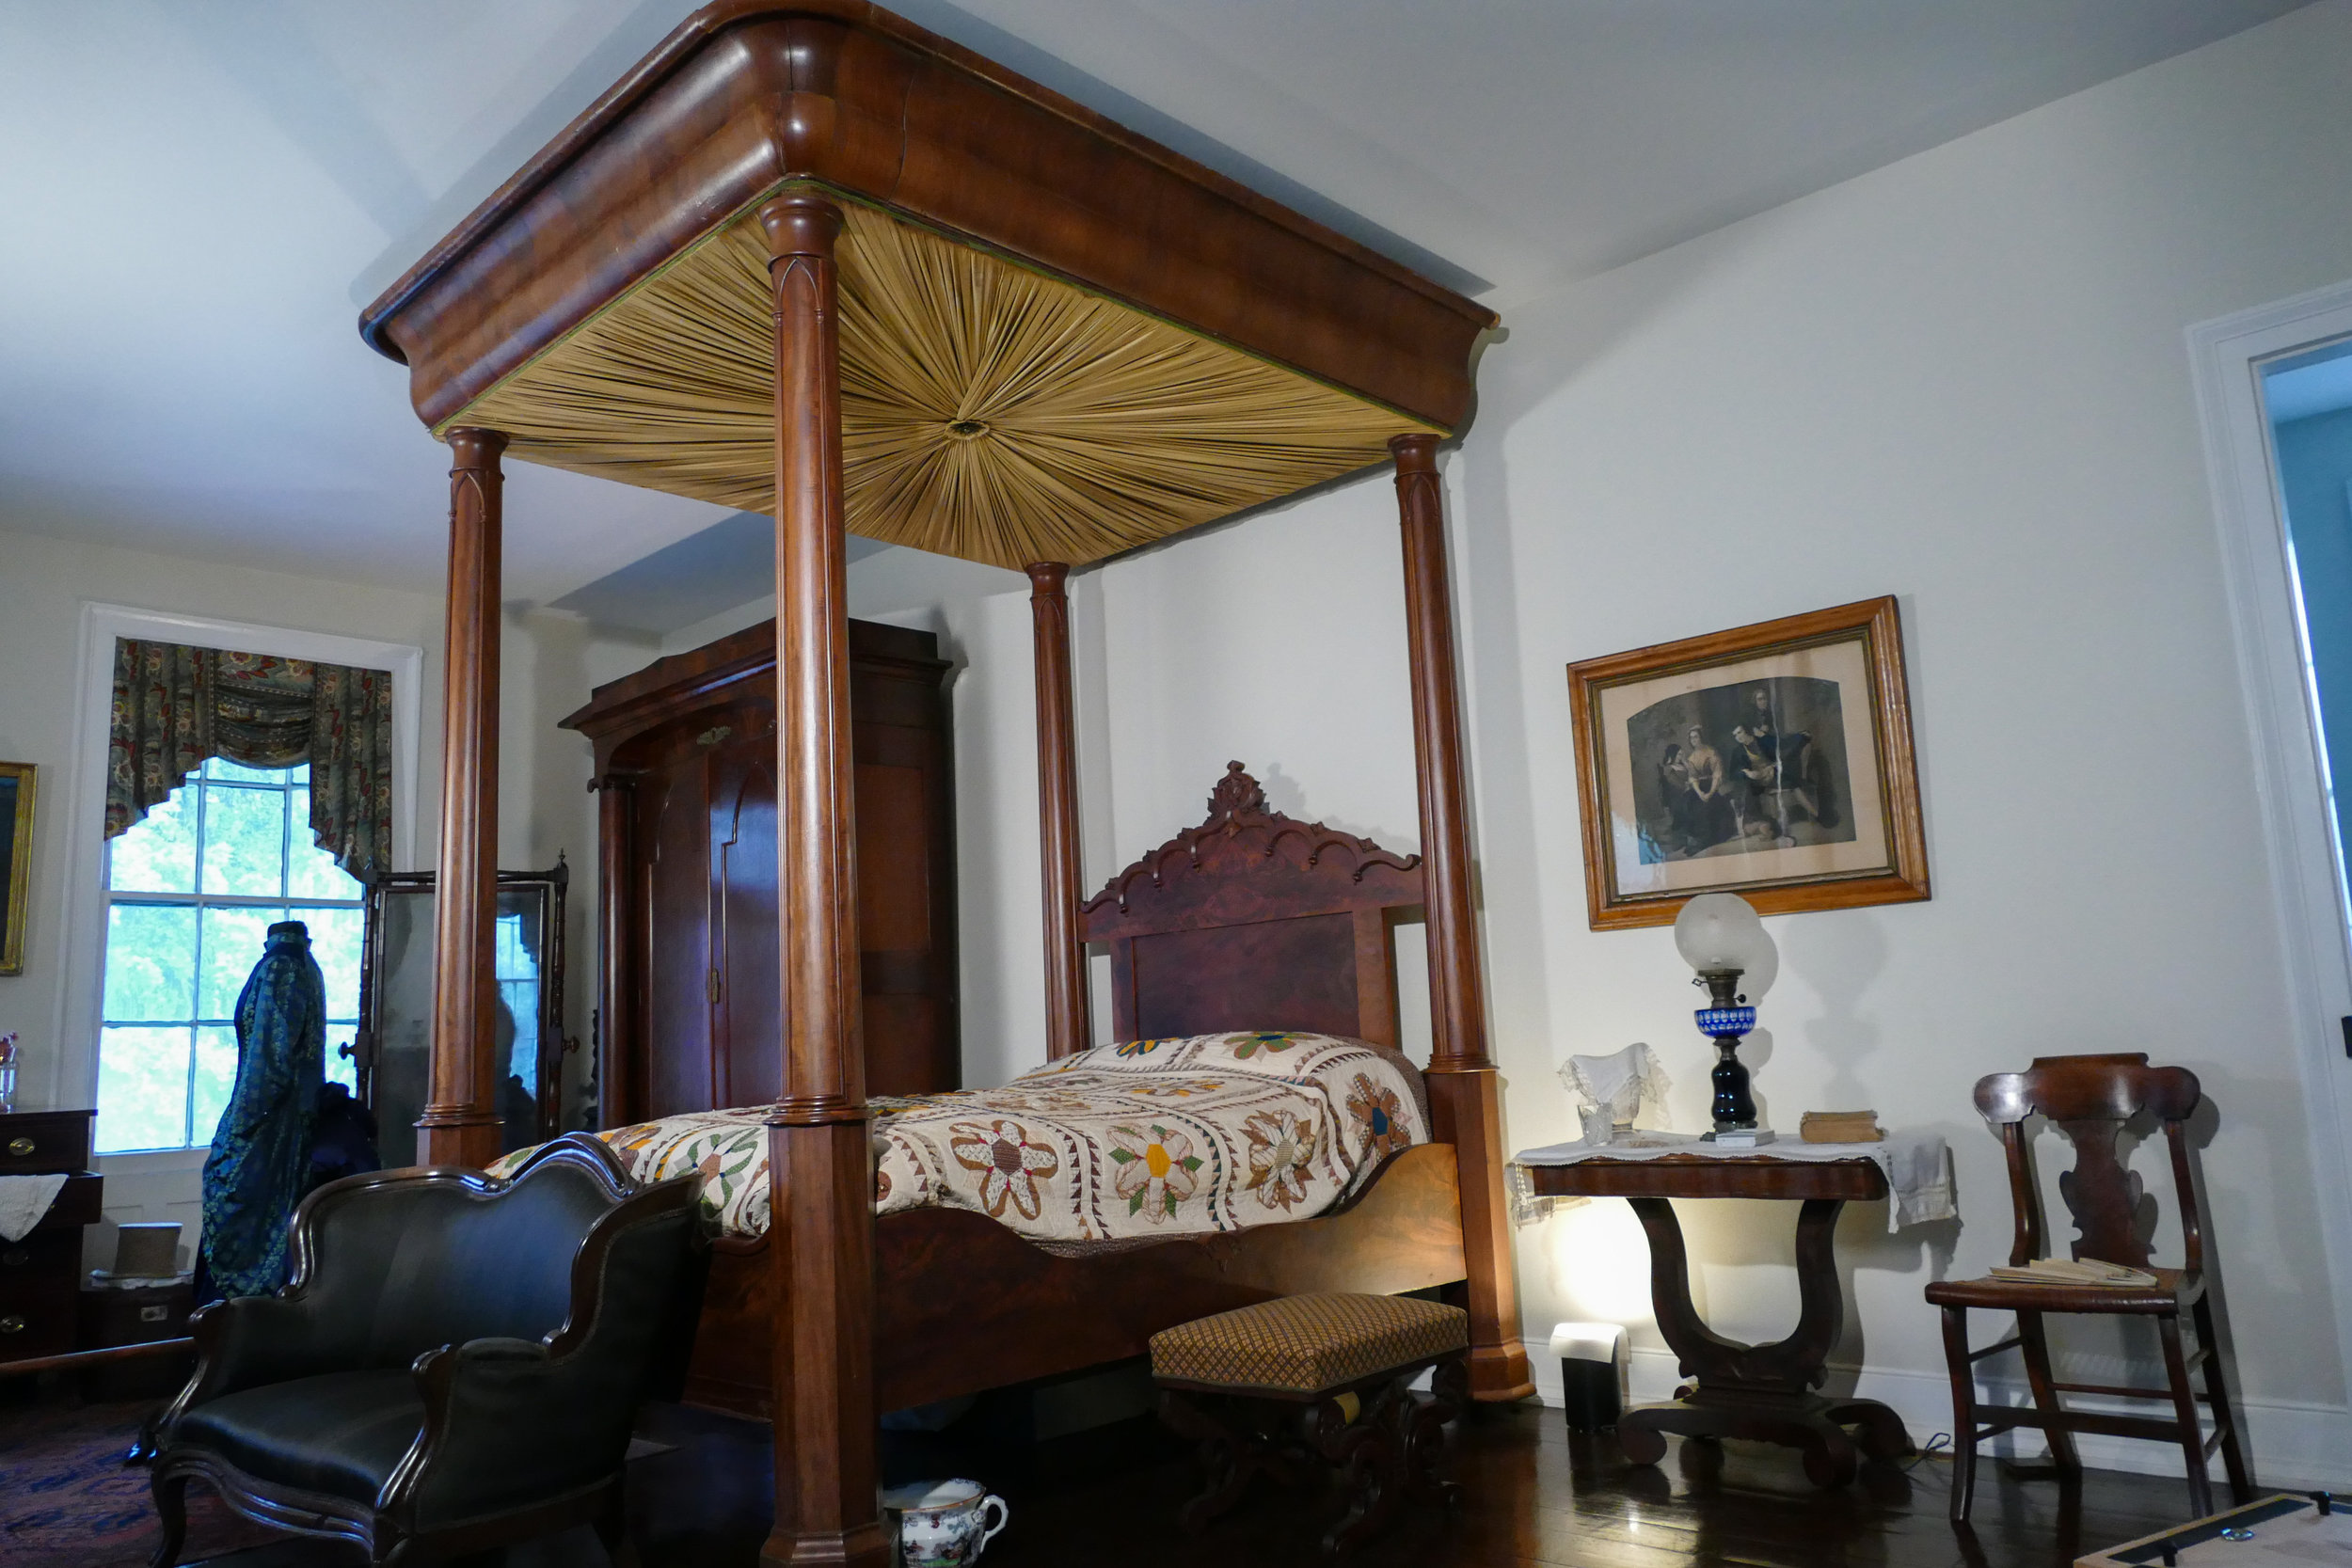 19th century Four poster bed with tester, Nichols-Rice Cherry House, Permanent collection of The Heritage Society